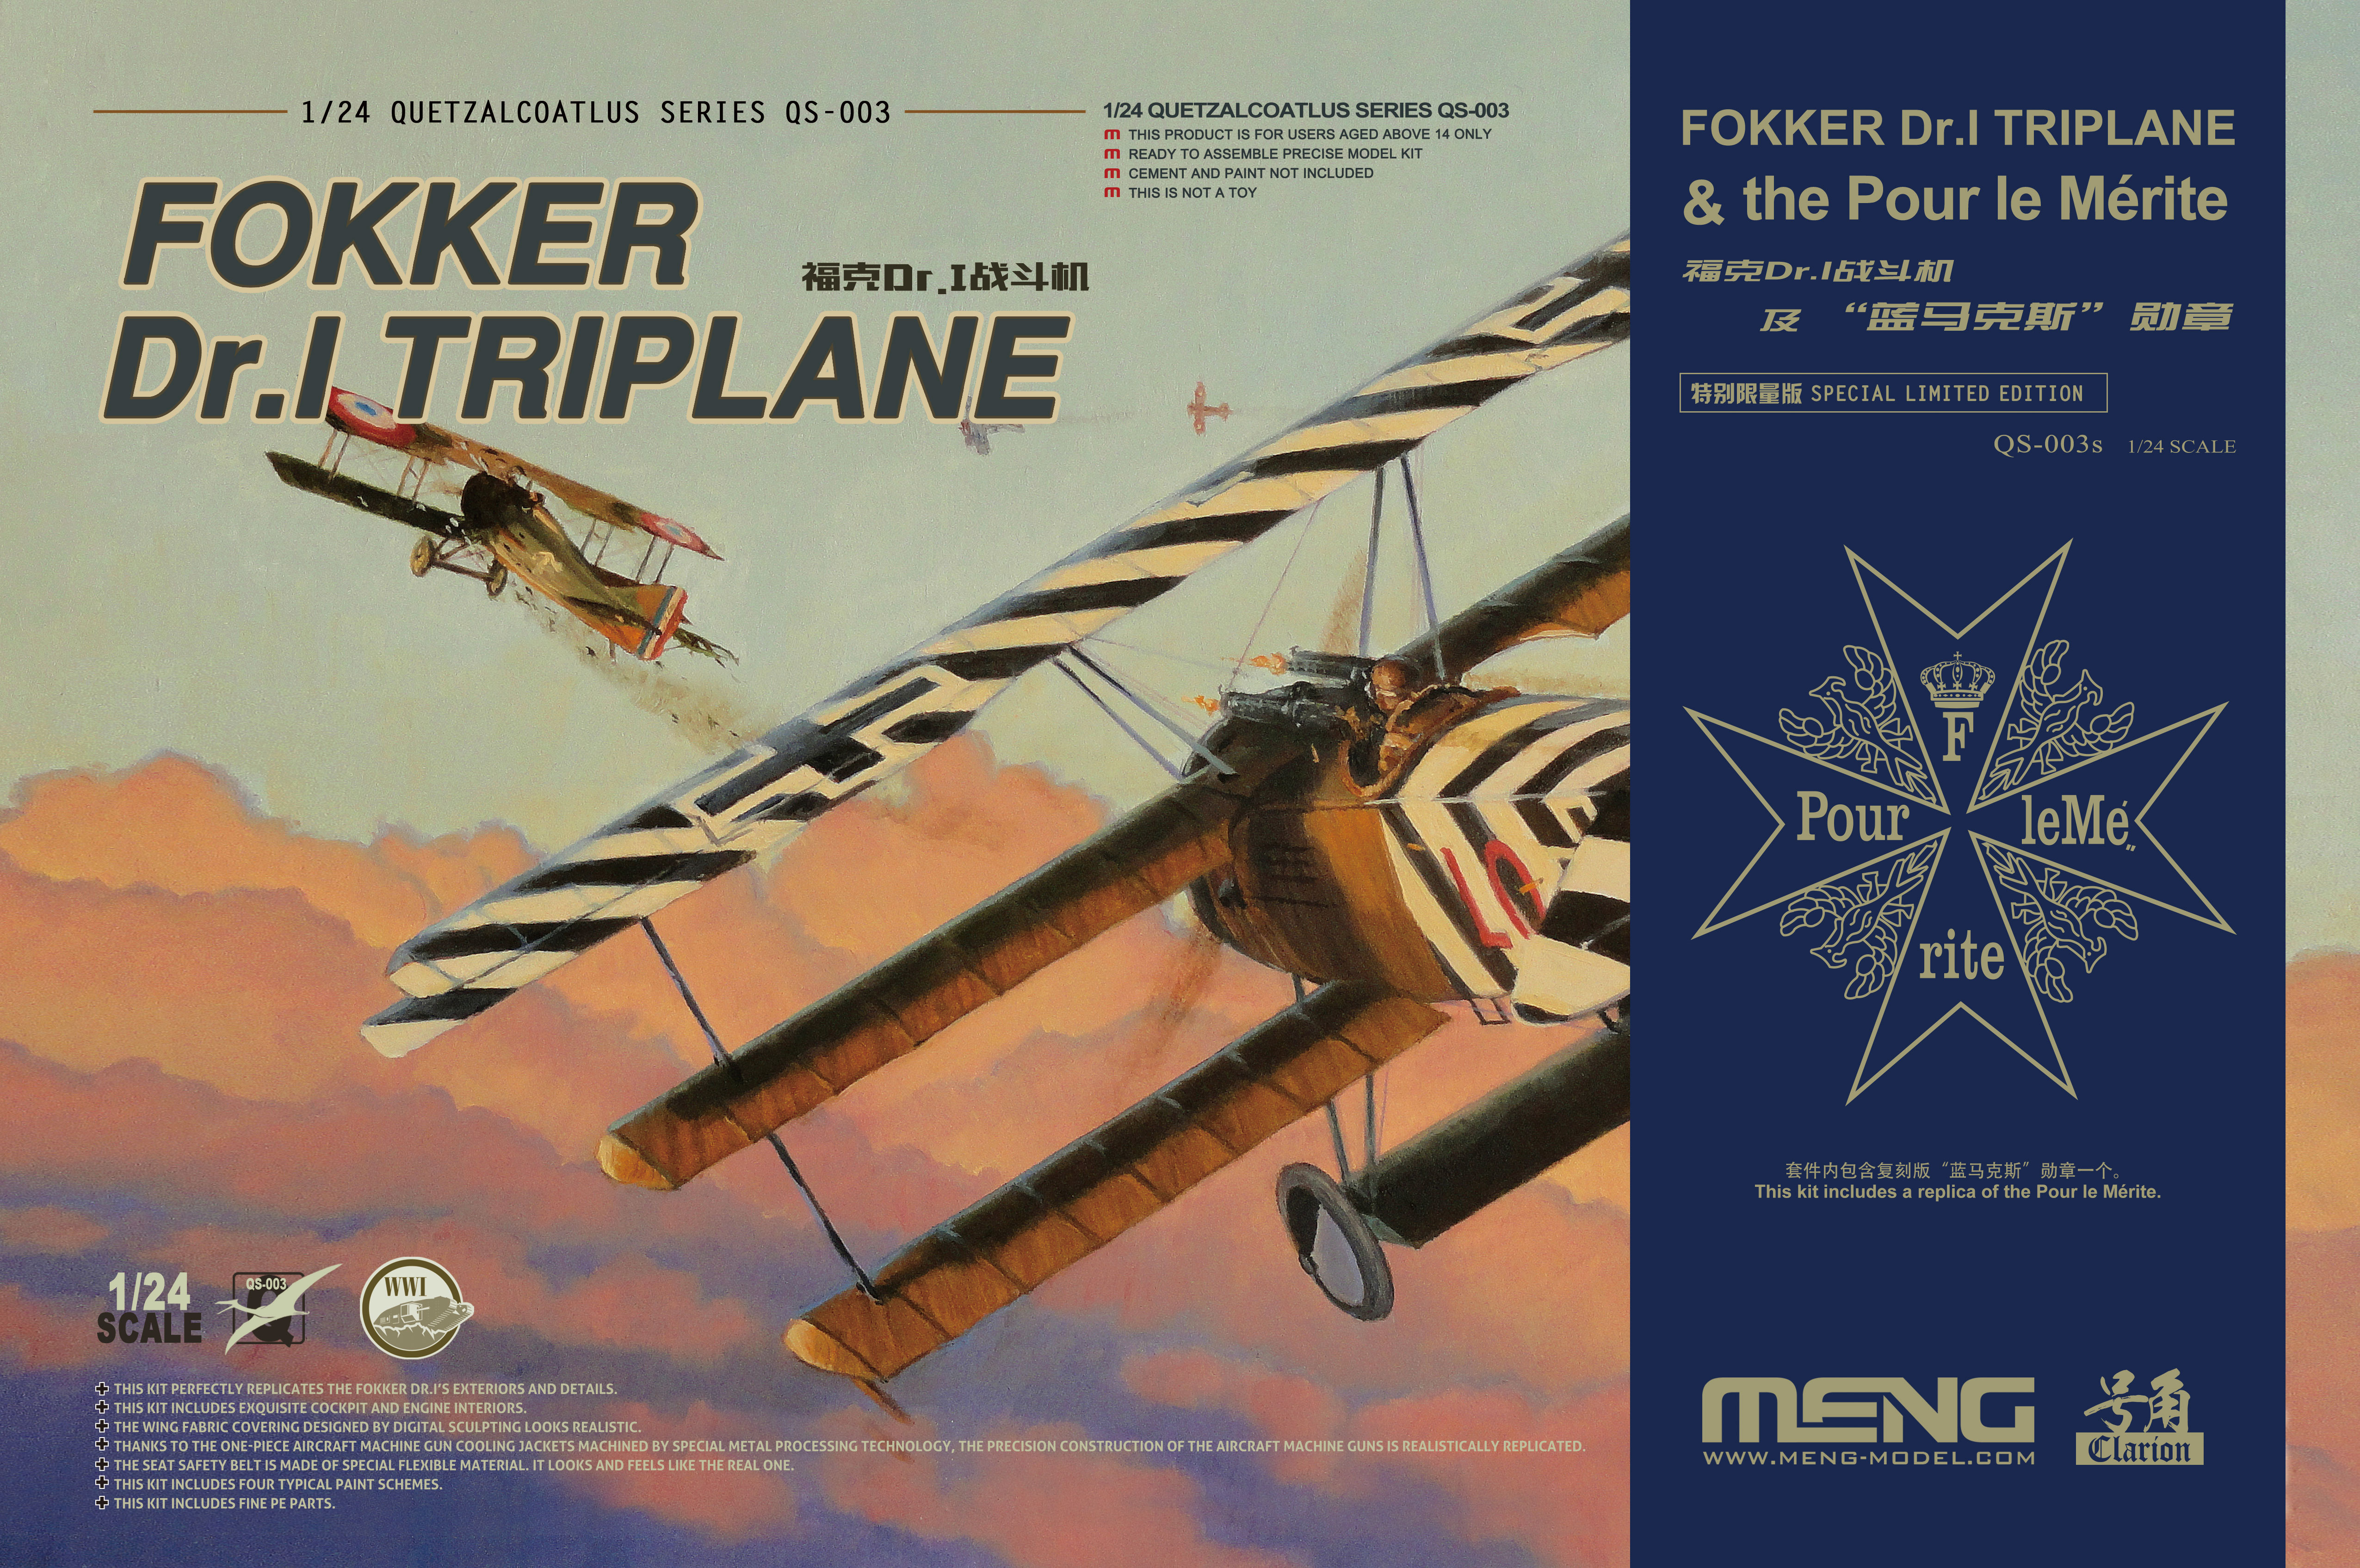 Meng 1/24 Fokker Dr.I Triplane & Blue Max Medal Limited Edition, Includes One Collection-class Replica of the Blue Max